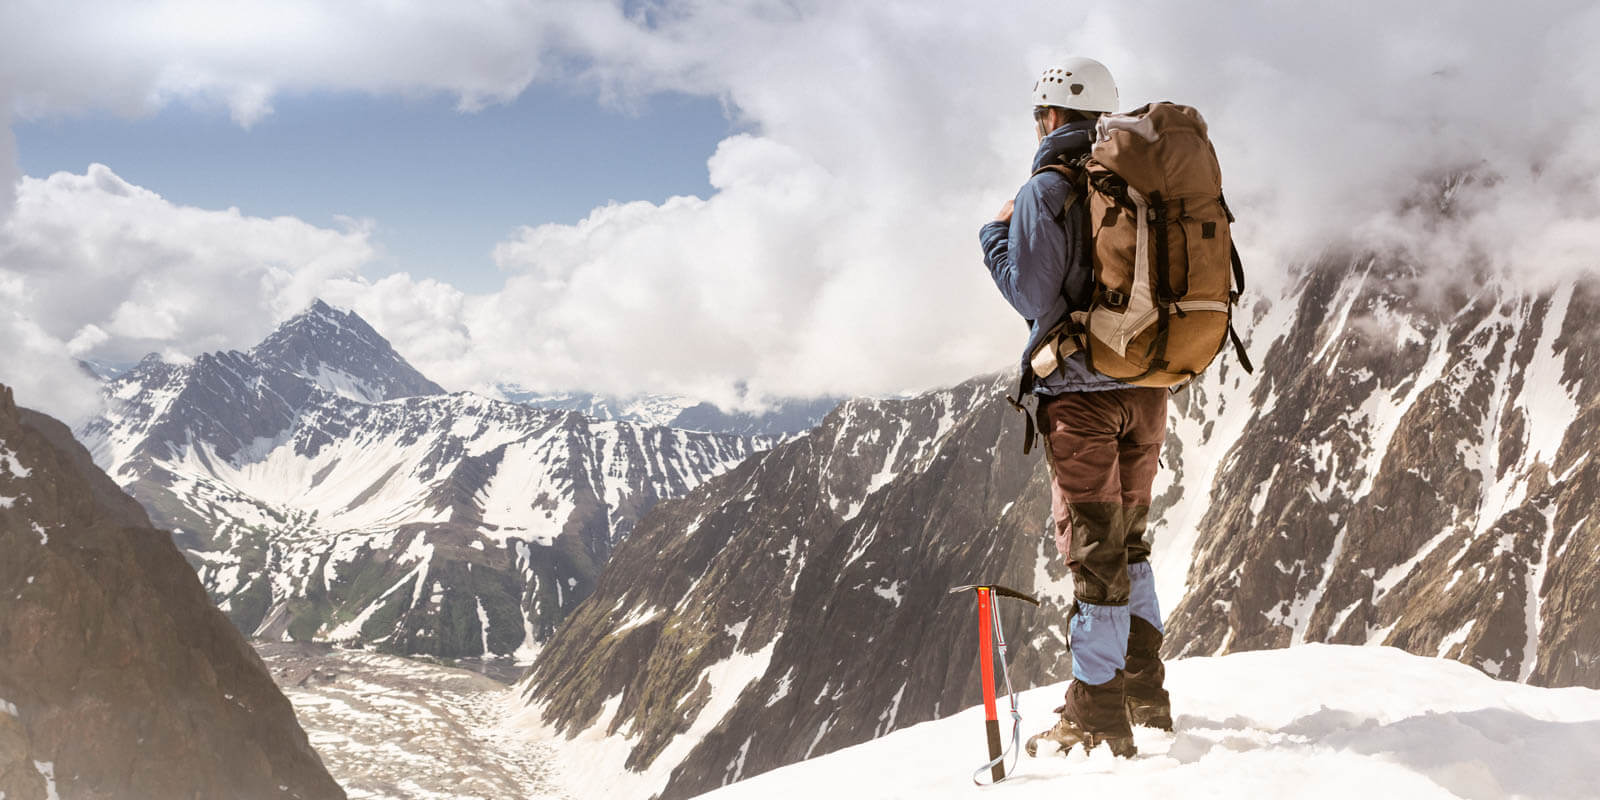 A mountaineer stands on a mountain and looks into the distance